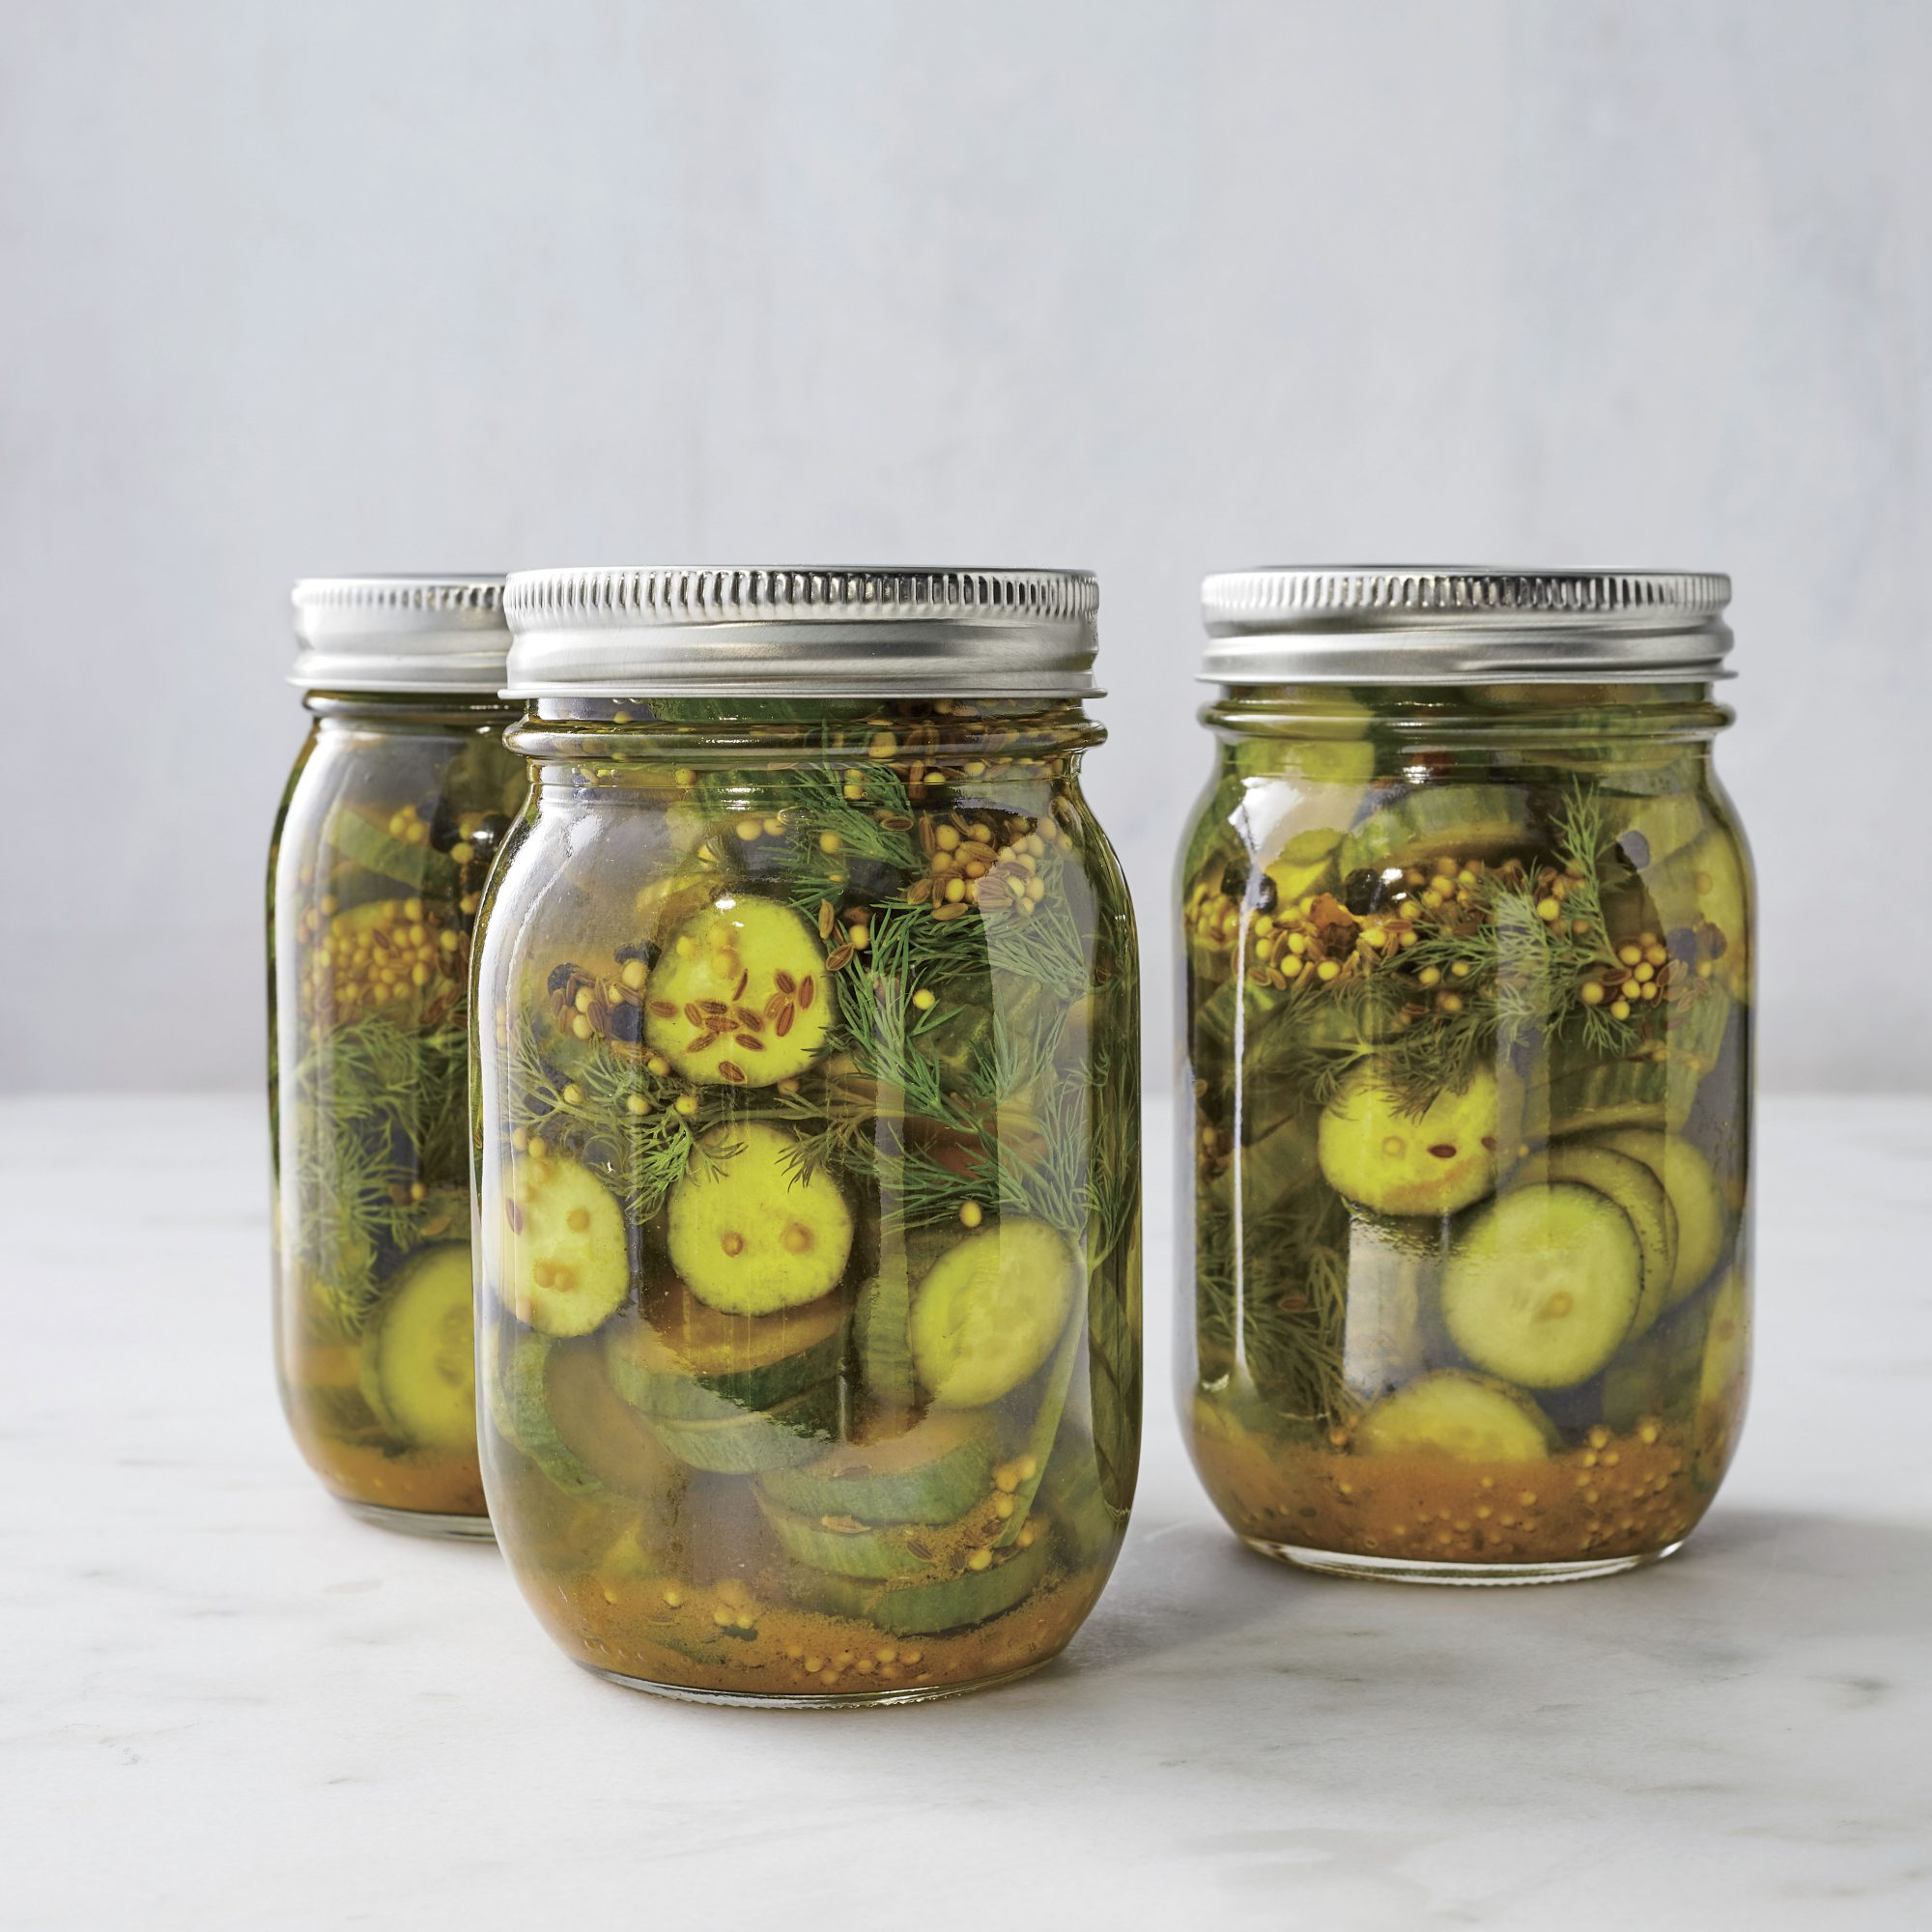 Turmeric-Dill Cucumbers Southern Living